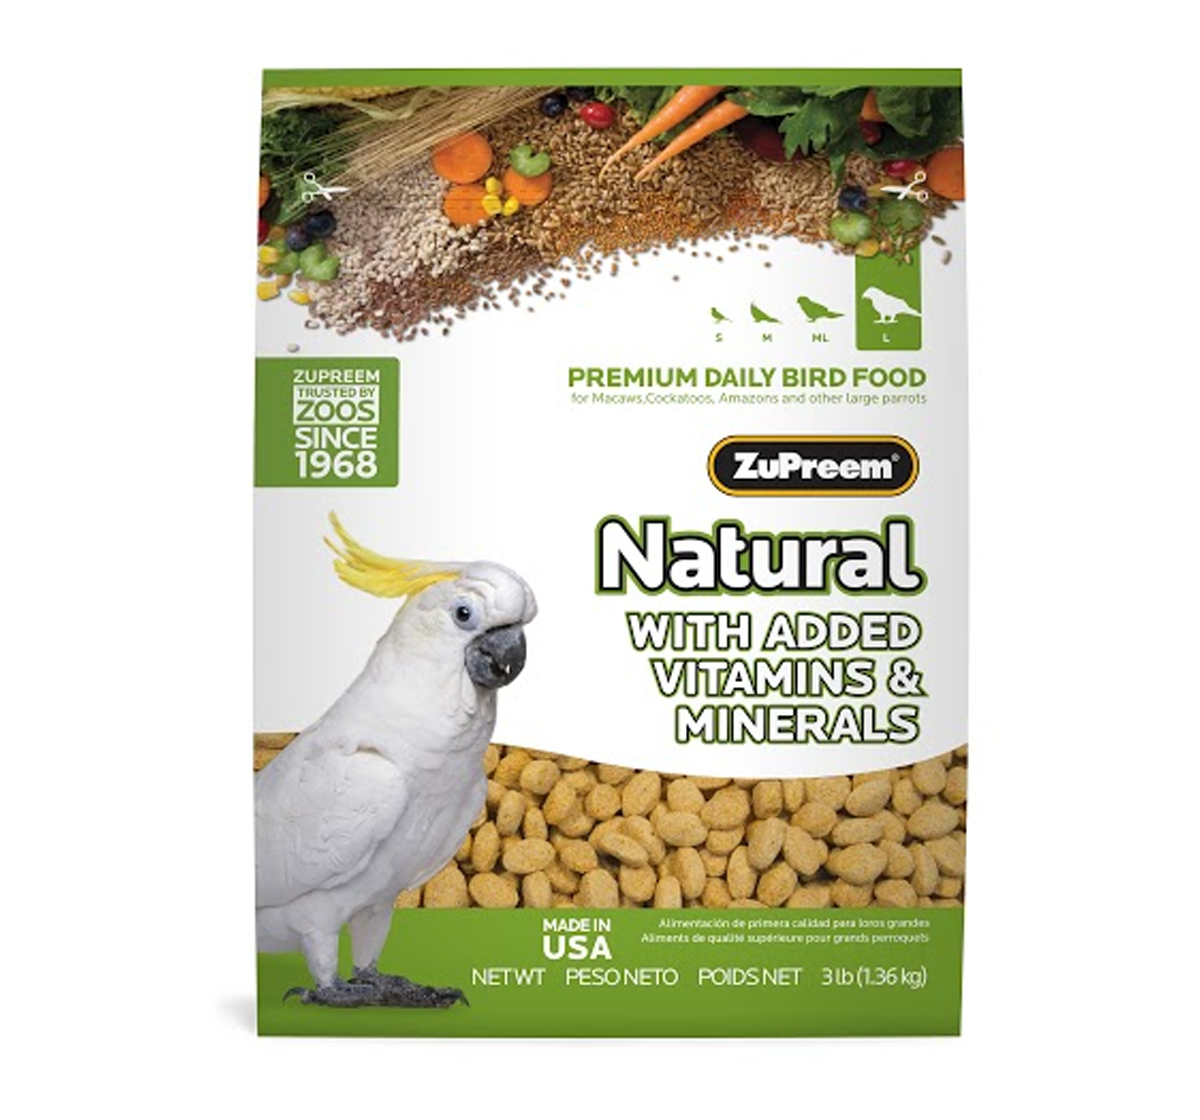 ZuPreem Natural For Large Parrot - 1.36 Kg